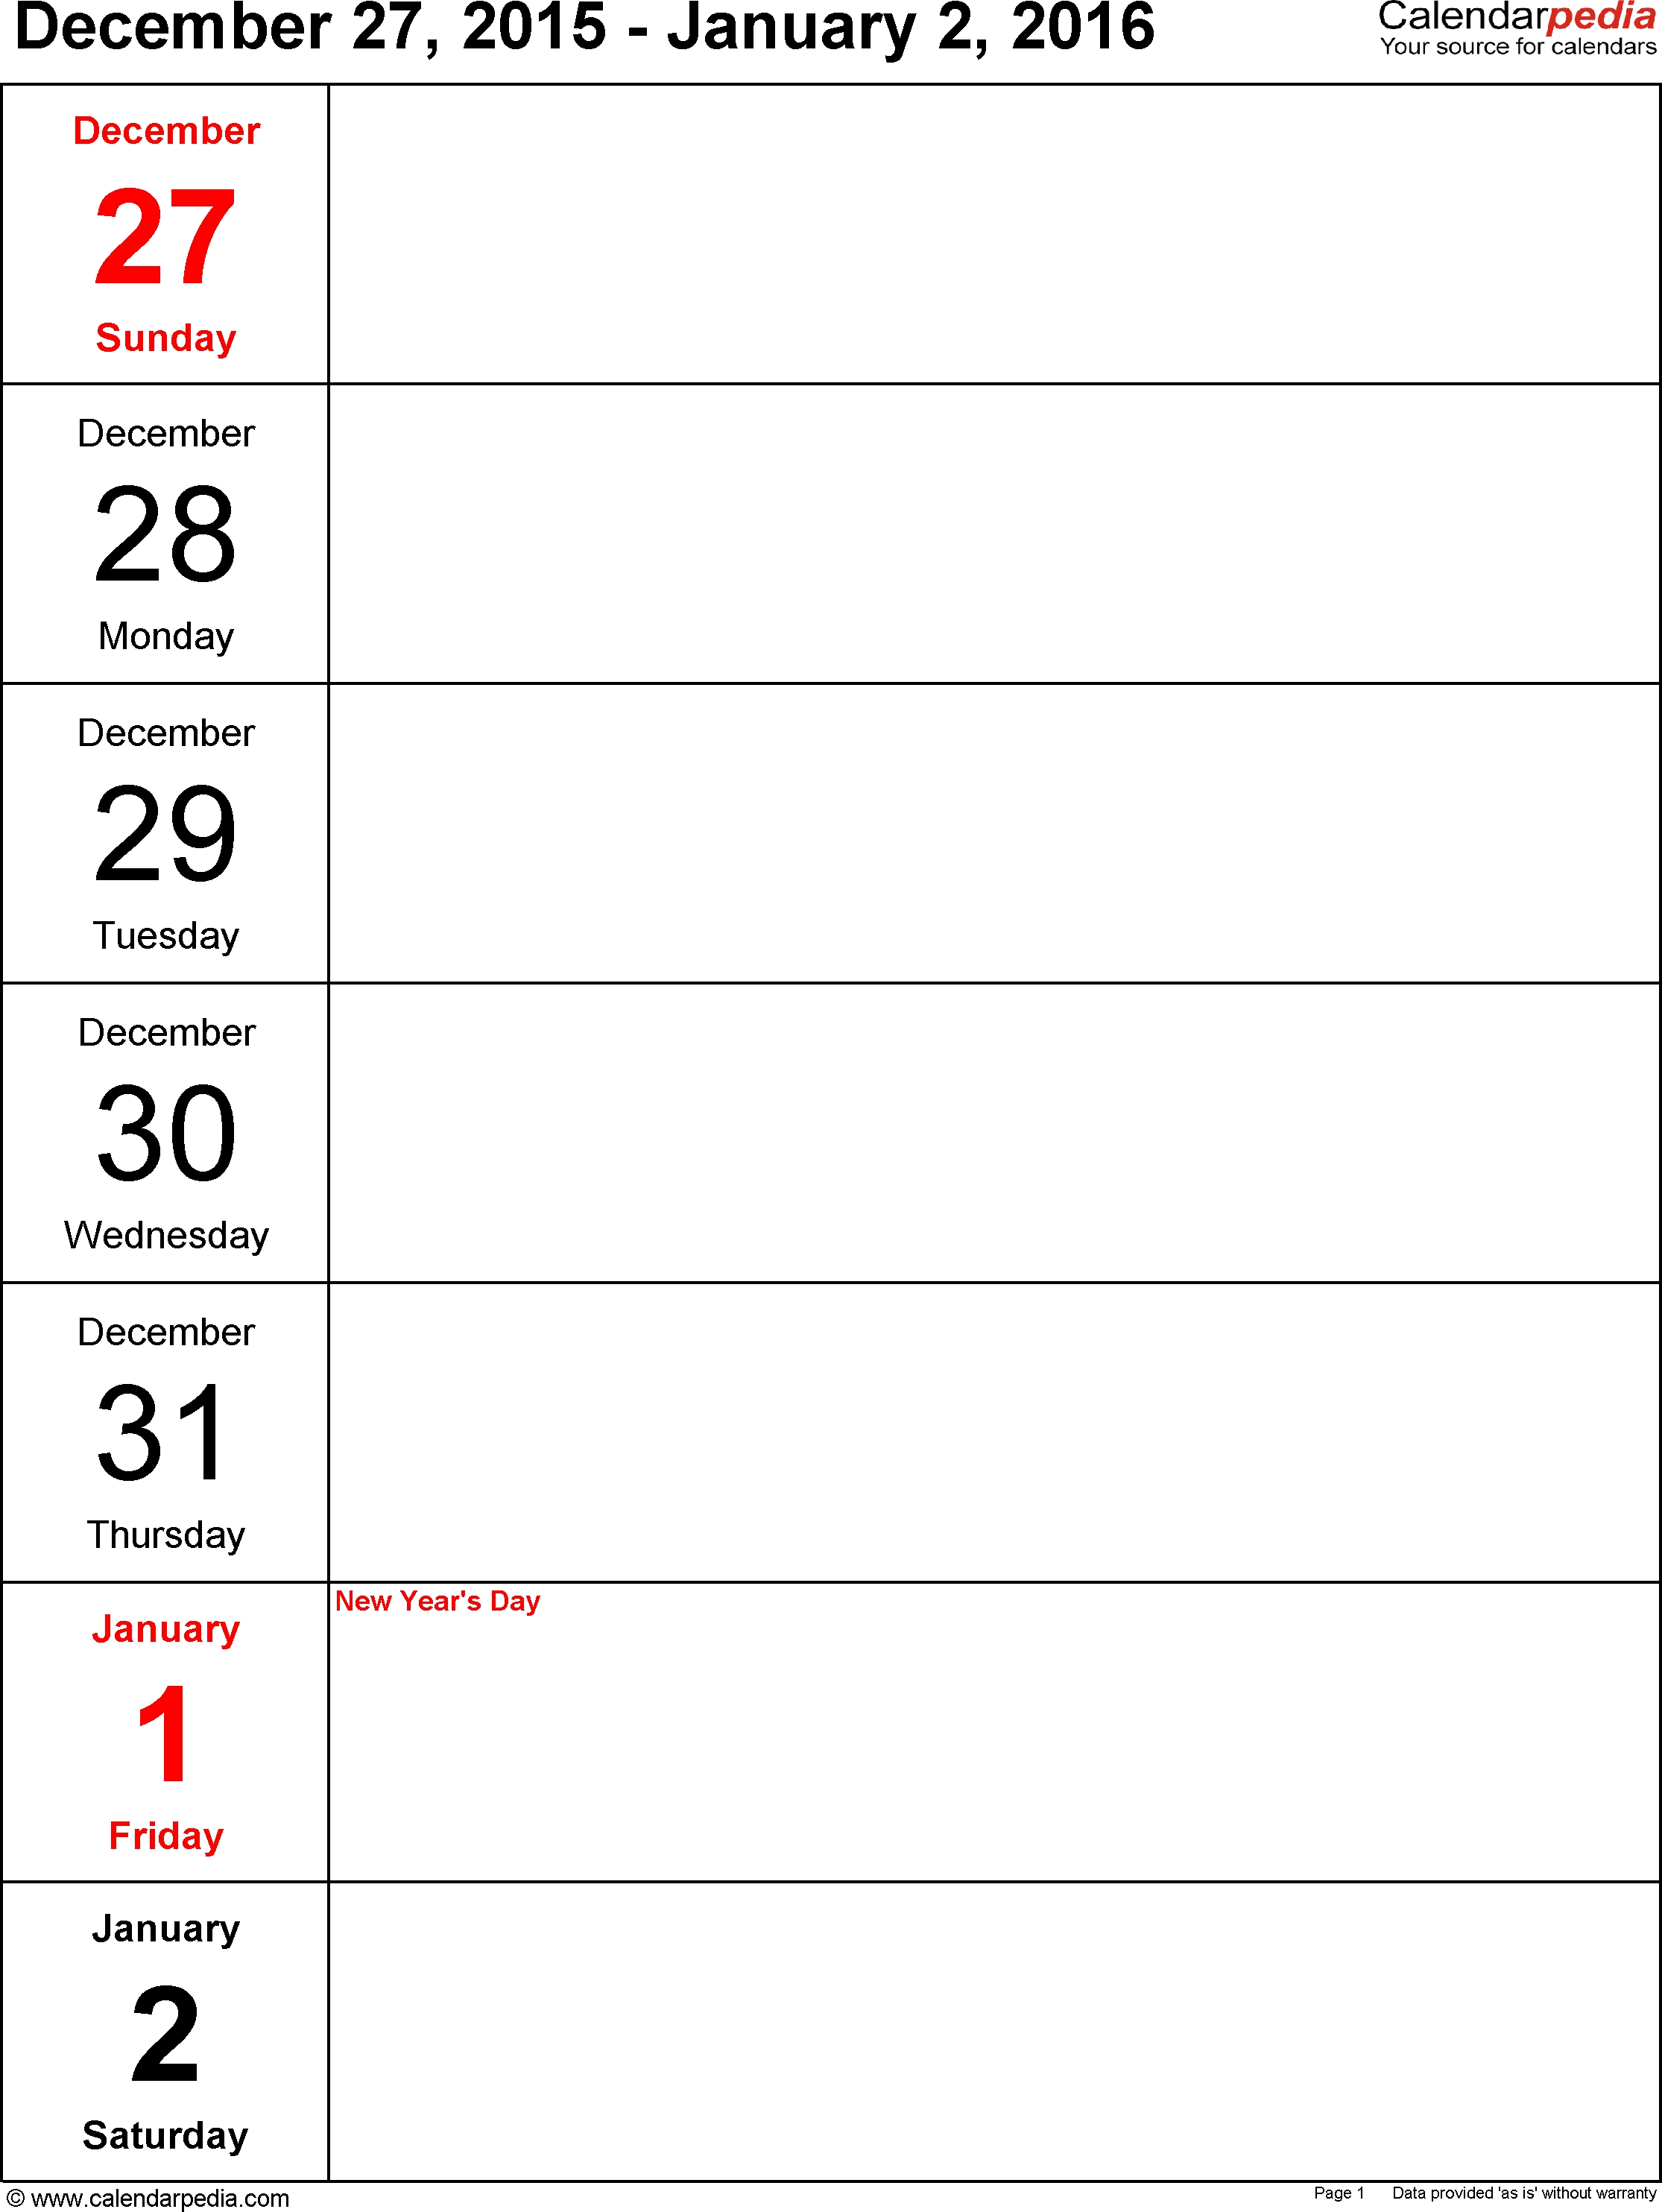 Weekly Calendar 2016 For Pdf - 12 Free Printable Templates inside Printable Calendar Day By Day